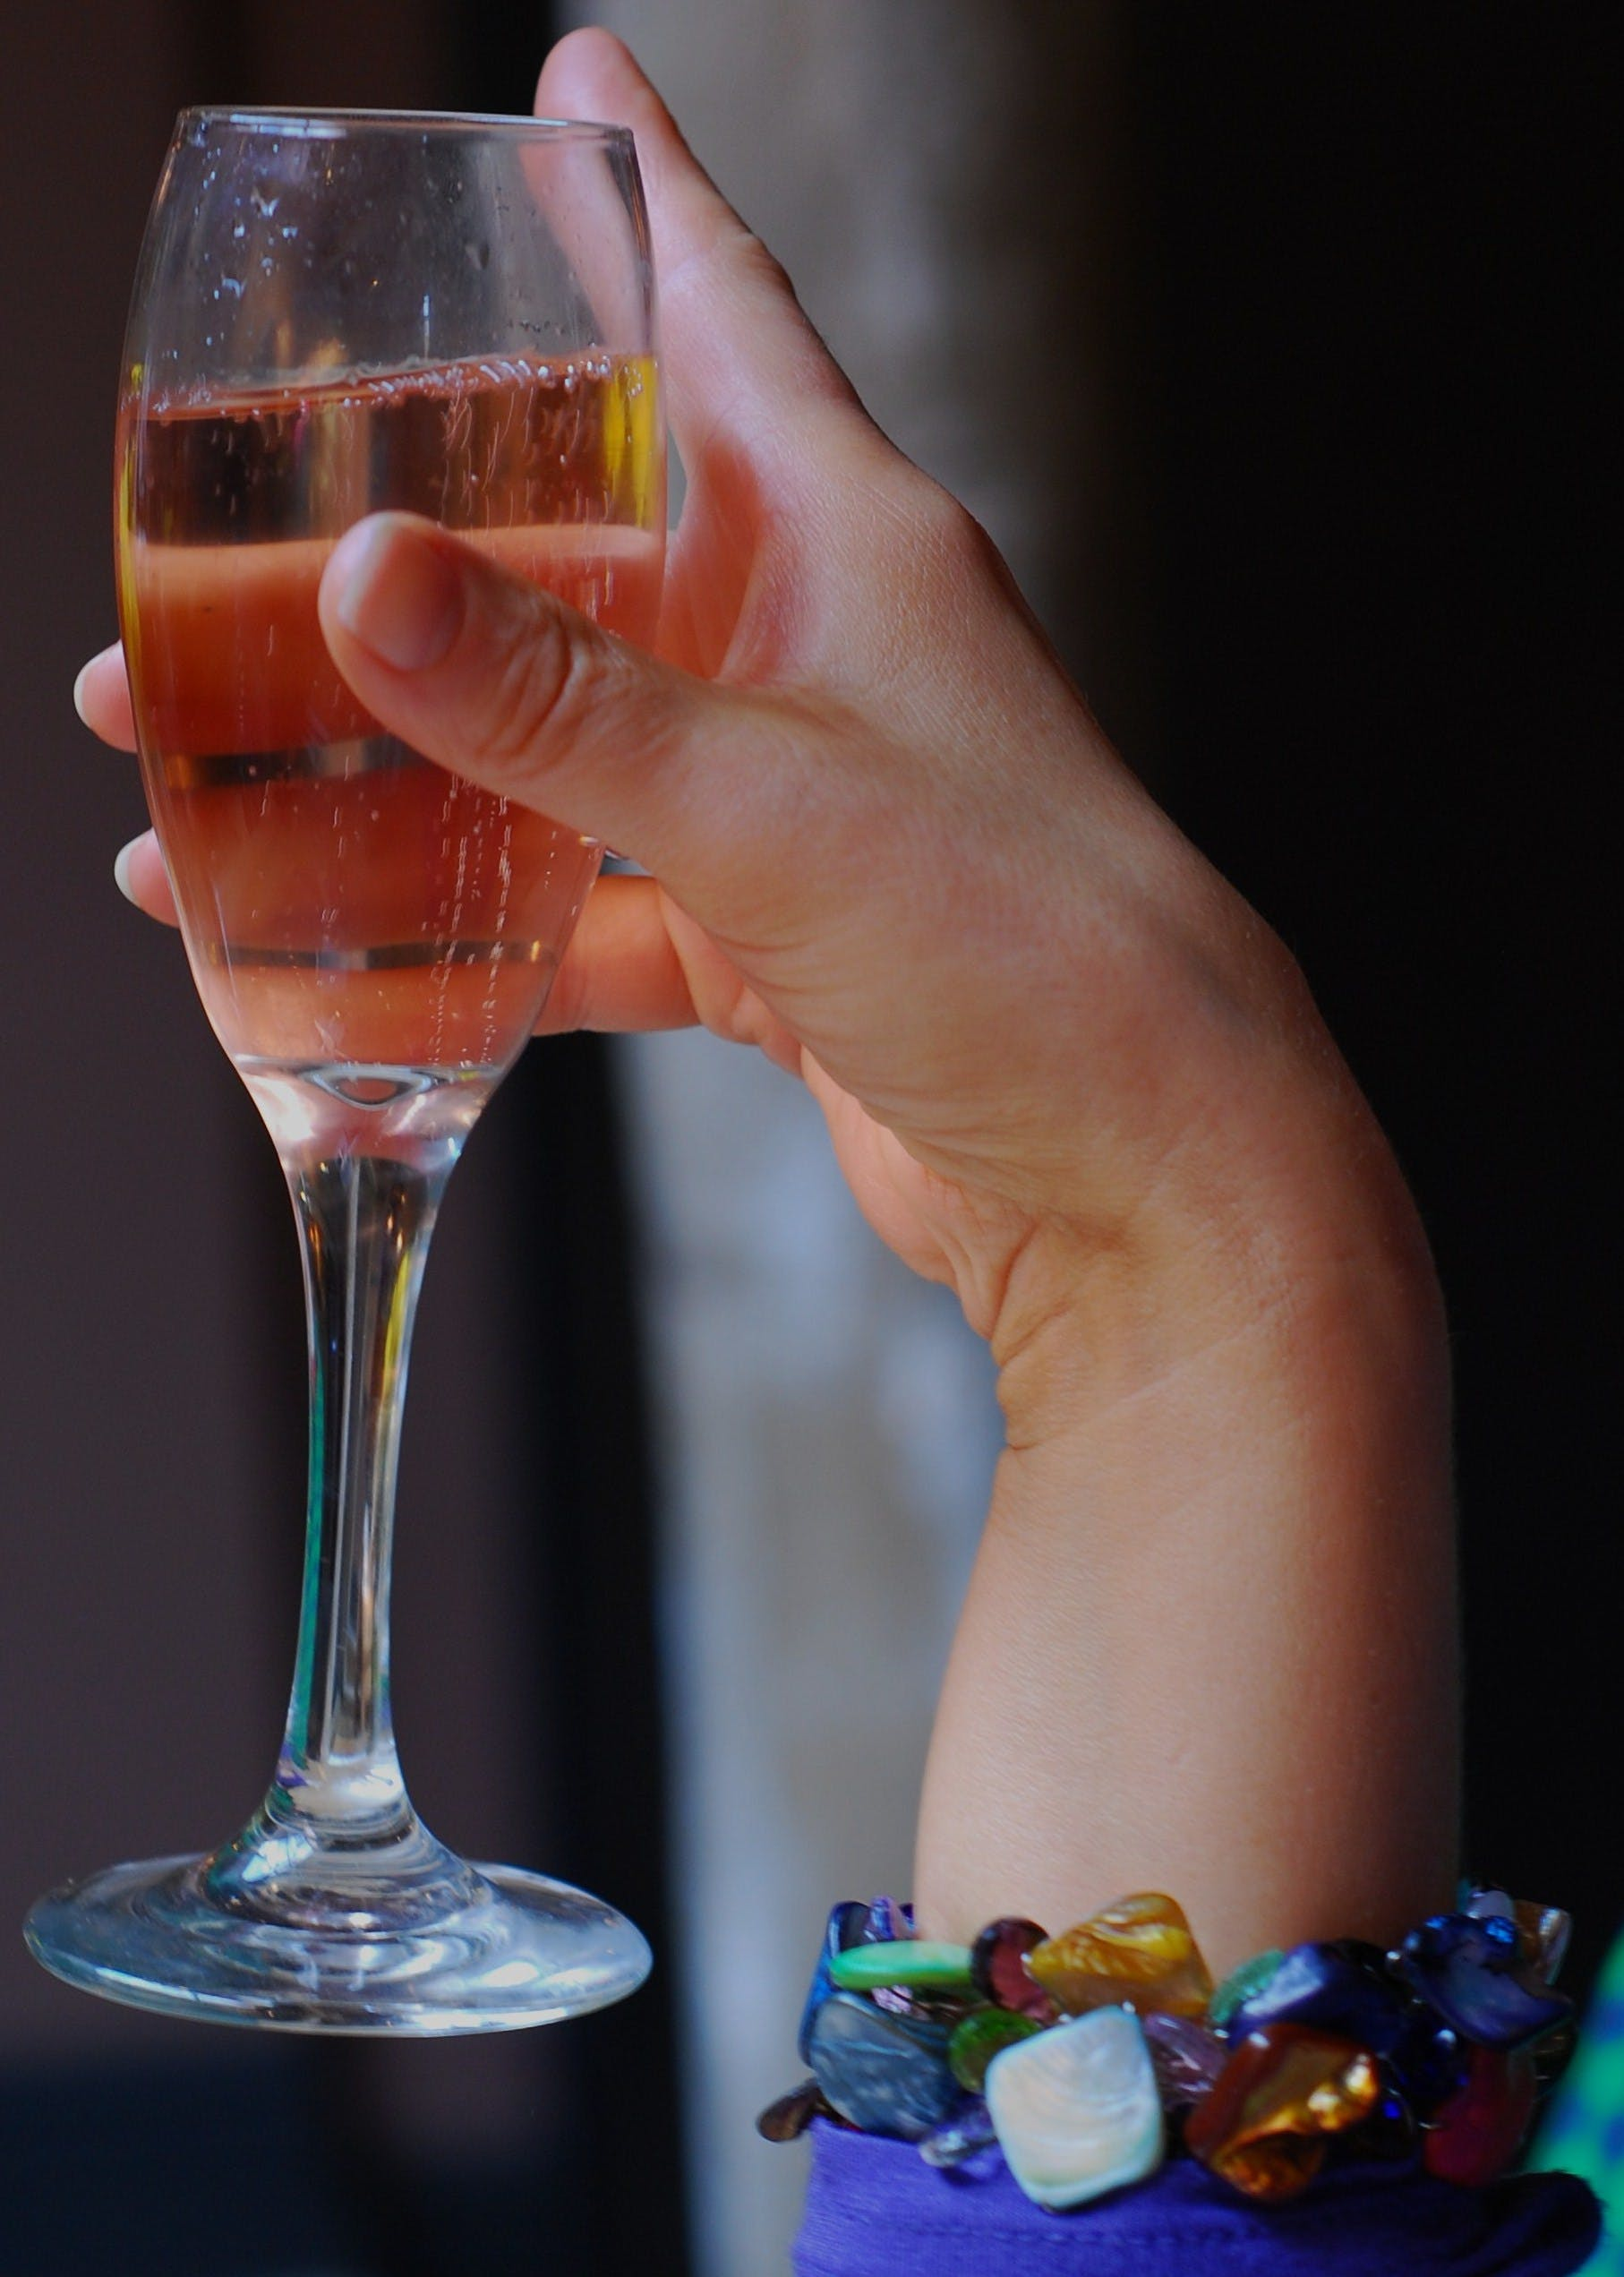 Free stock photo of elegant hand, Pink champagne